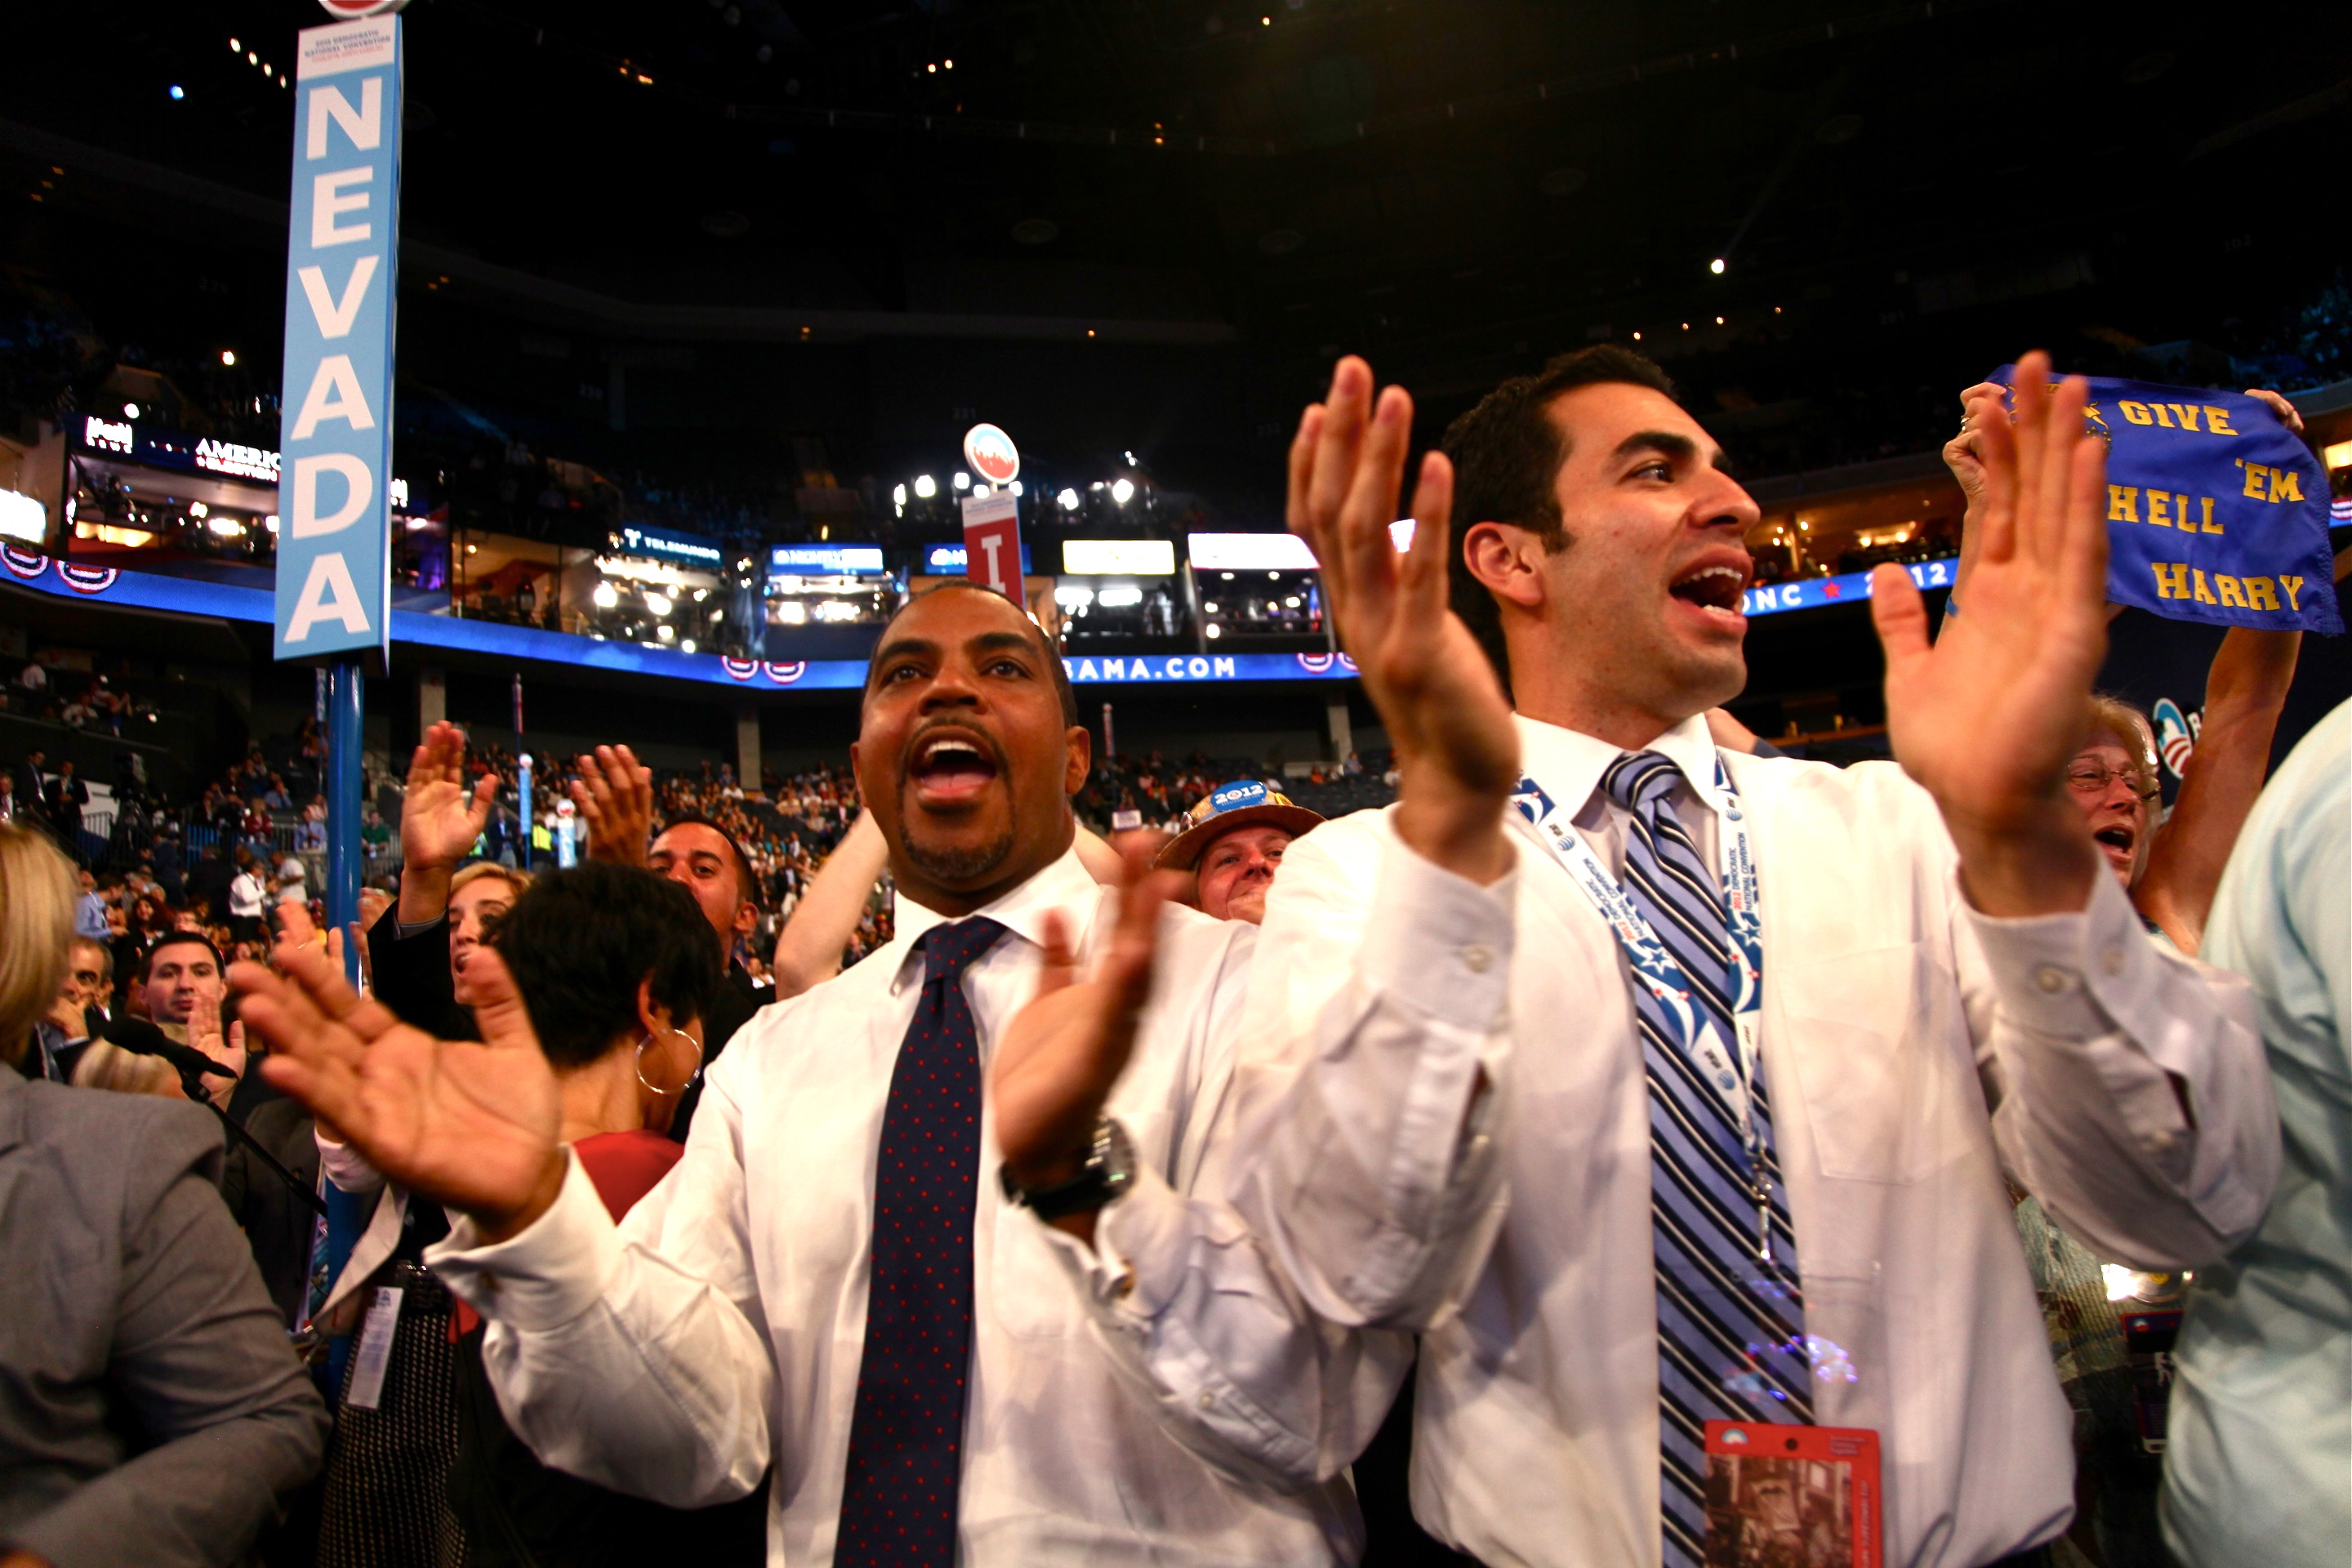 cheer speech Among undocumented immigrants, reactions to president barack obama's highly  anticipated immigration speech were mixed.